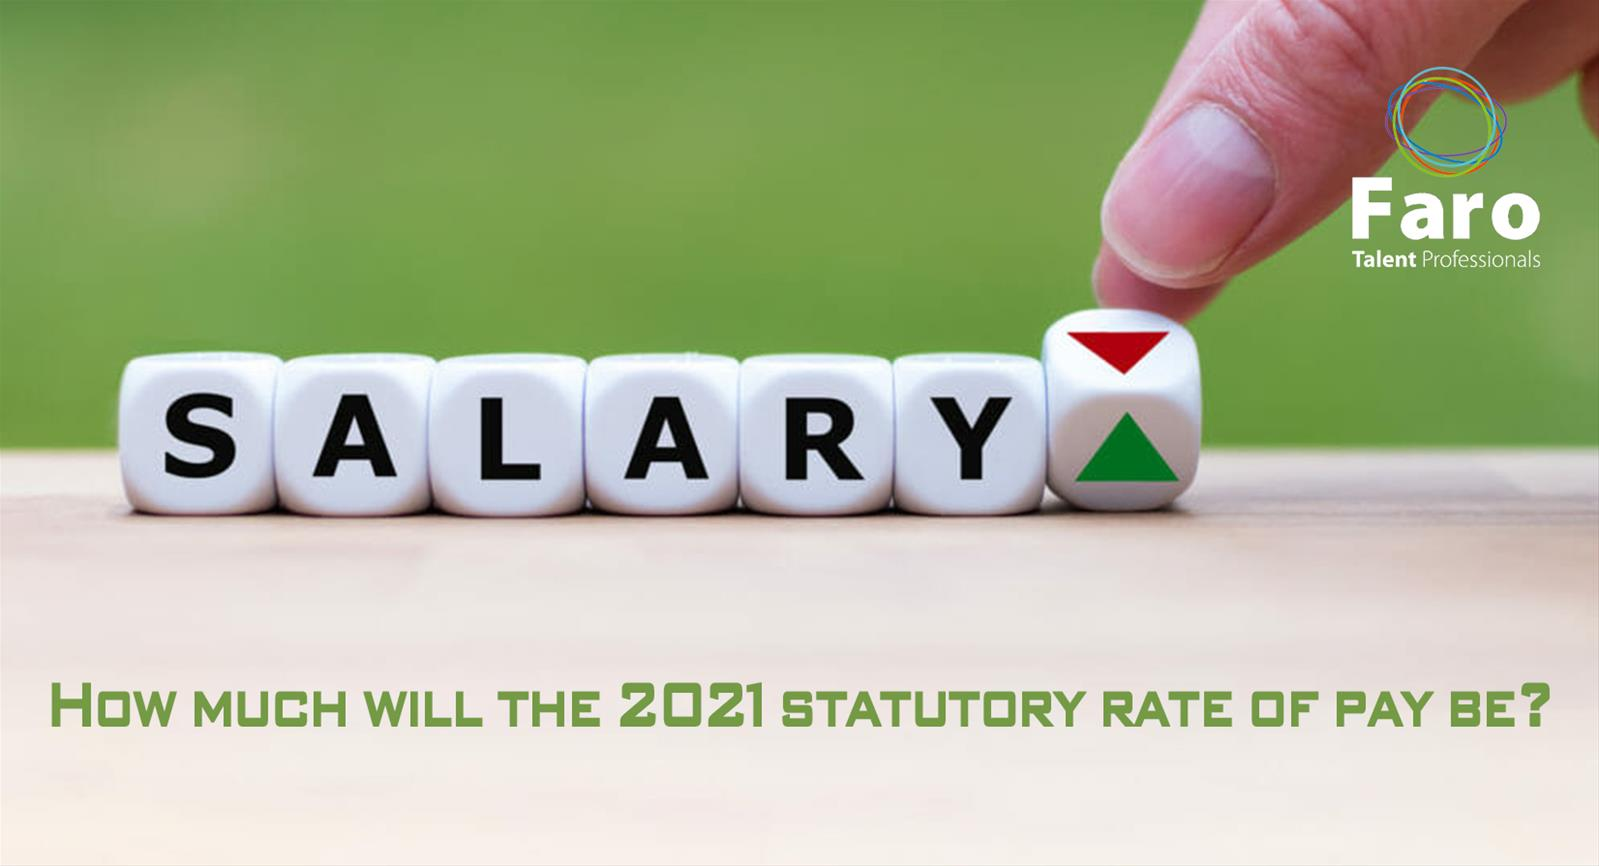 How much will the 2021 statutory rate of pay be?